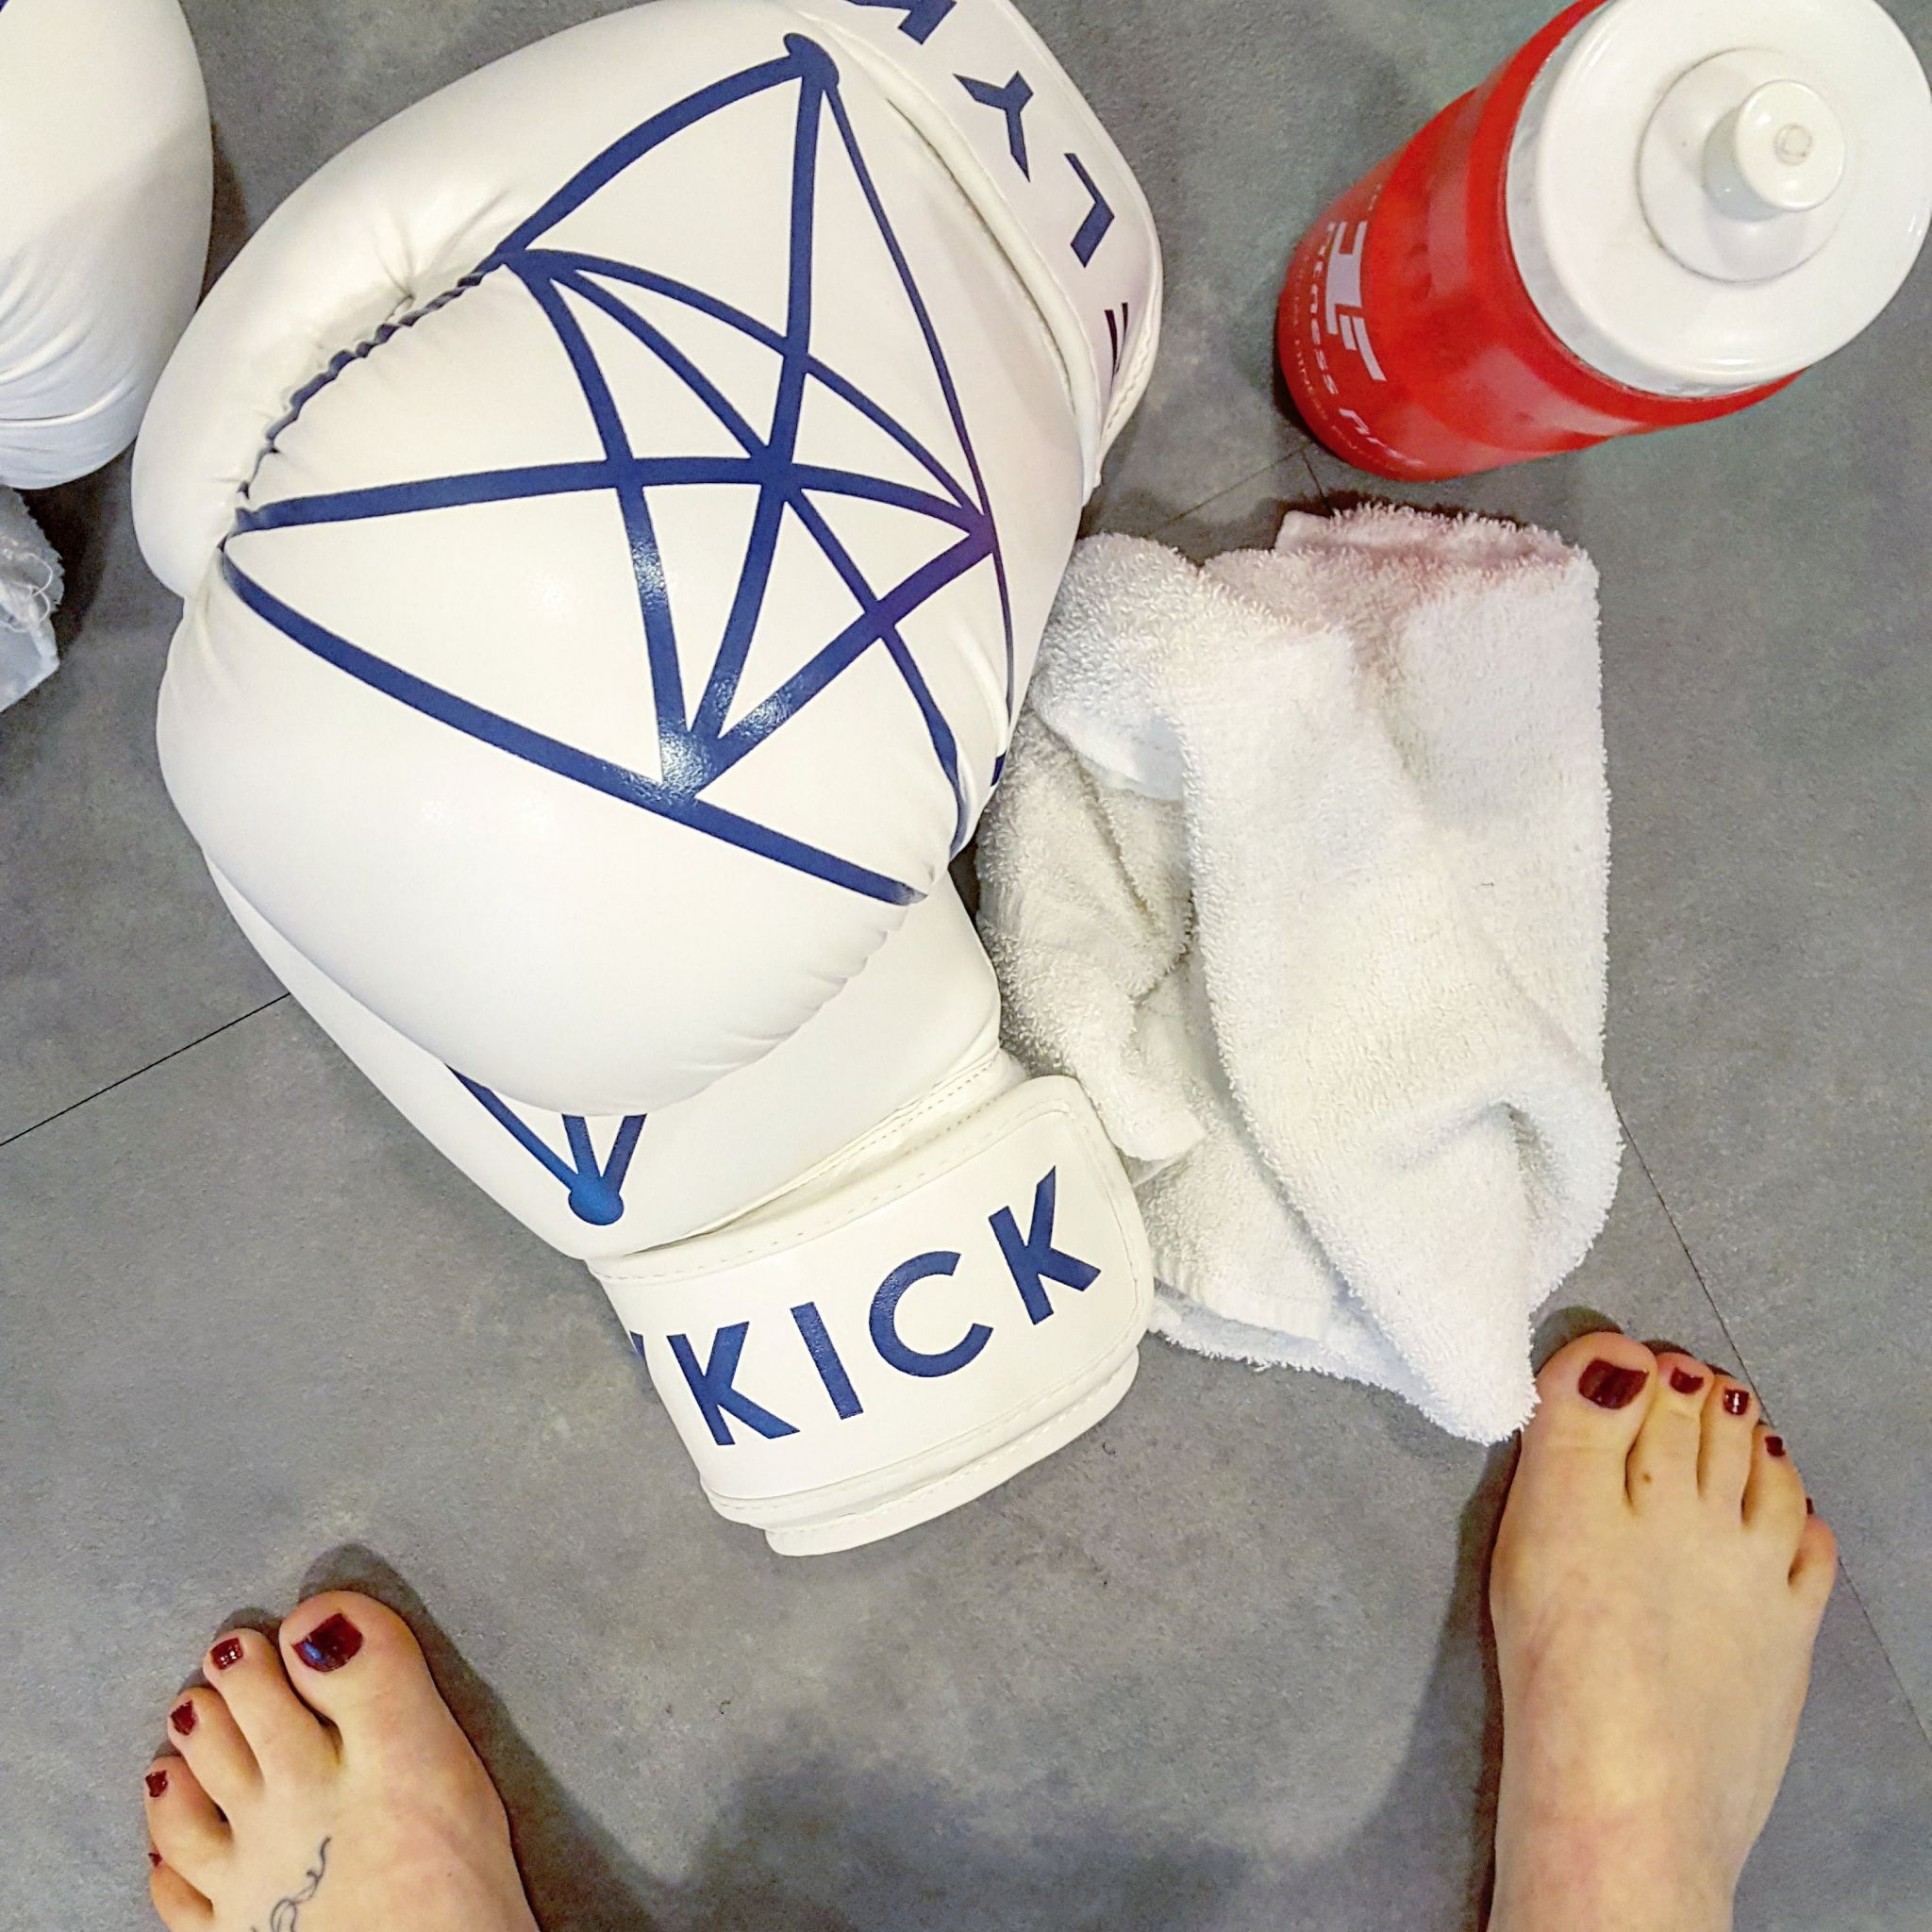 Flykick, Kickboxing, London